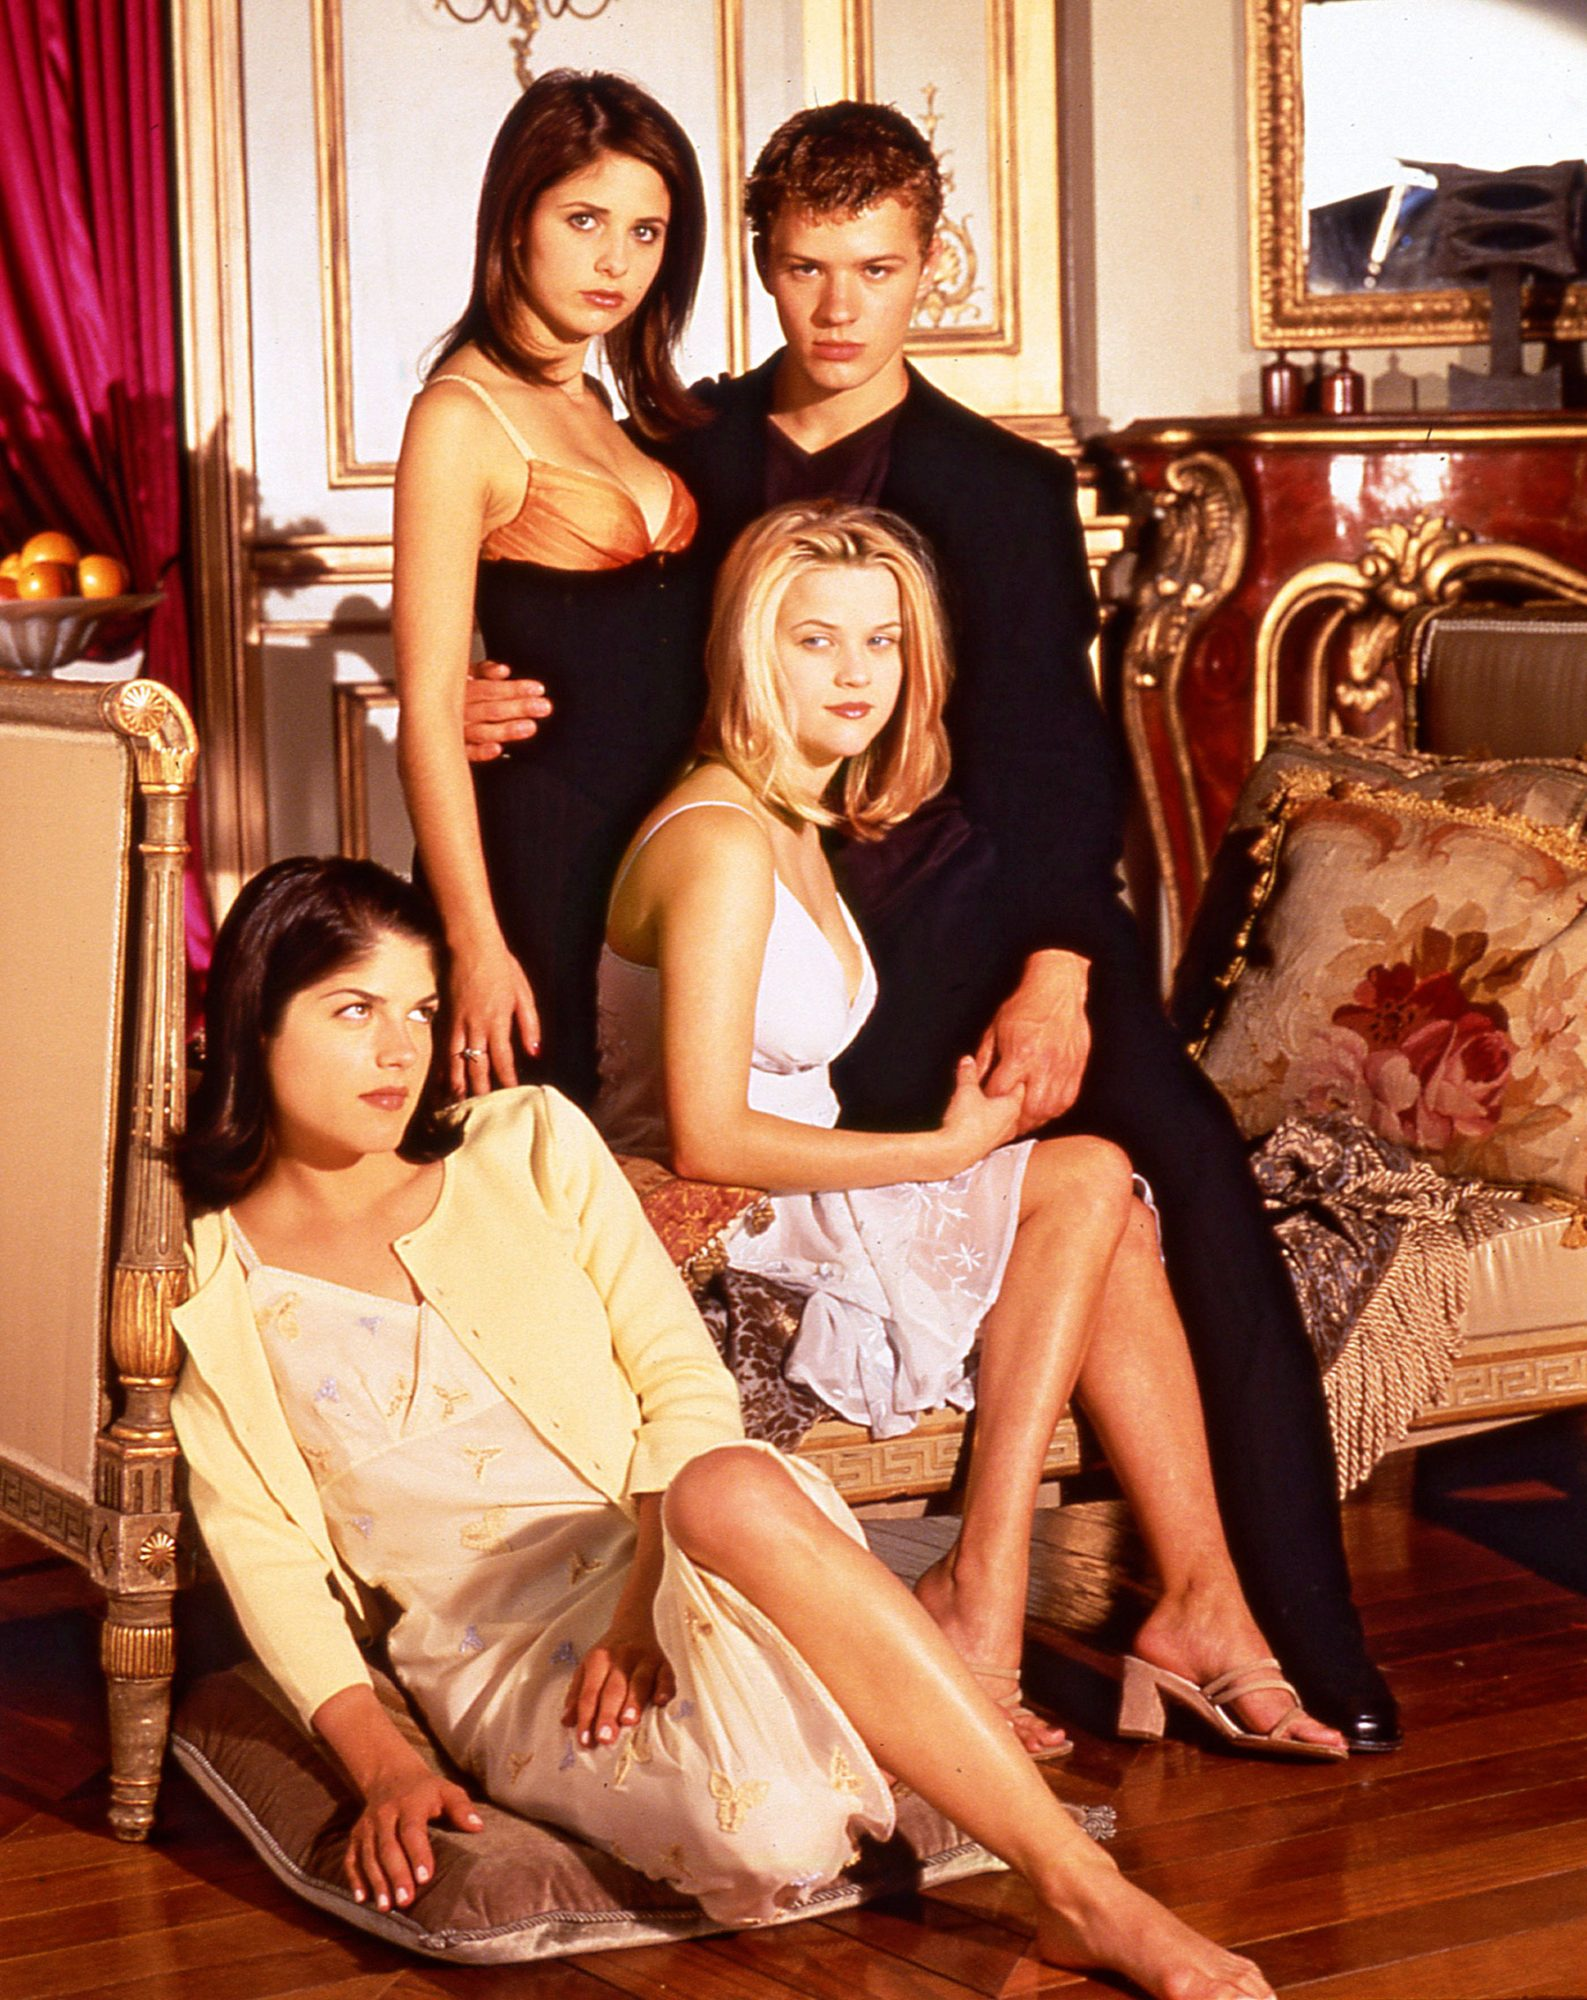 various stills and BTS from the 199 movie Cruel Intentions